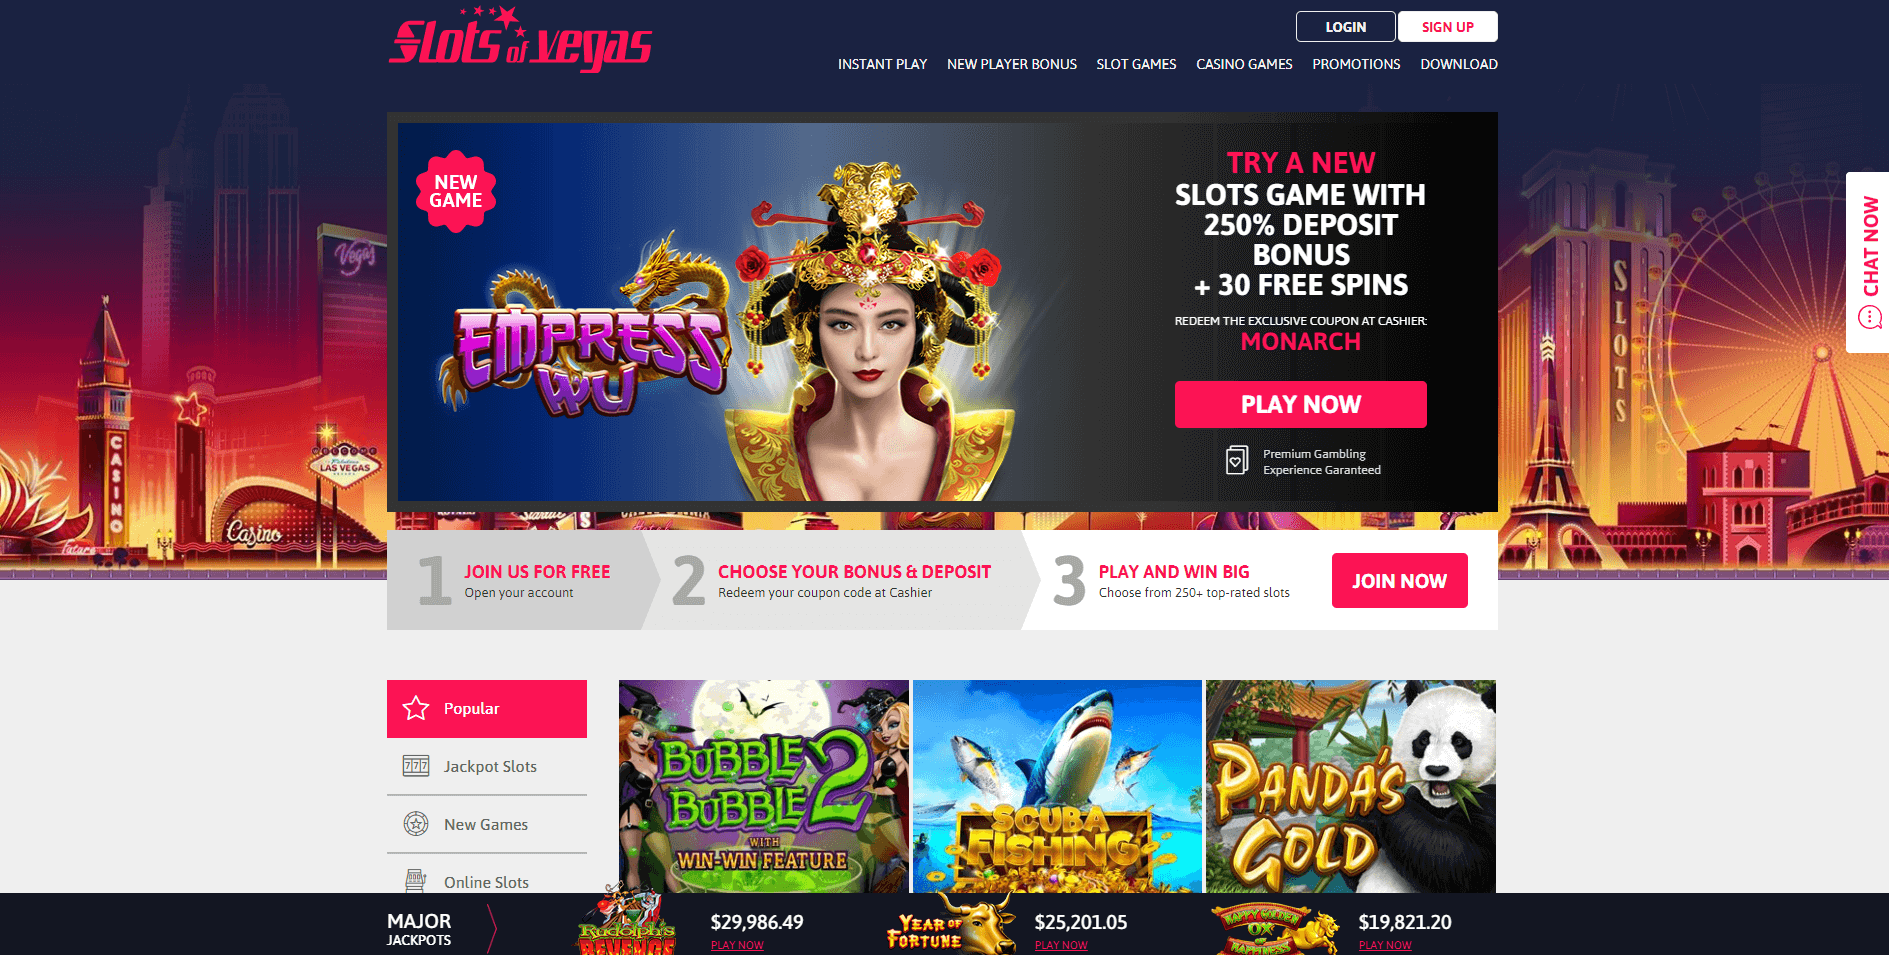 Slots Of Vegas Free Spins